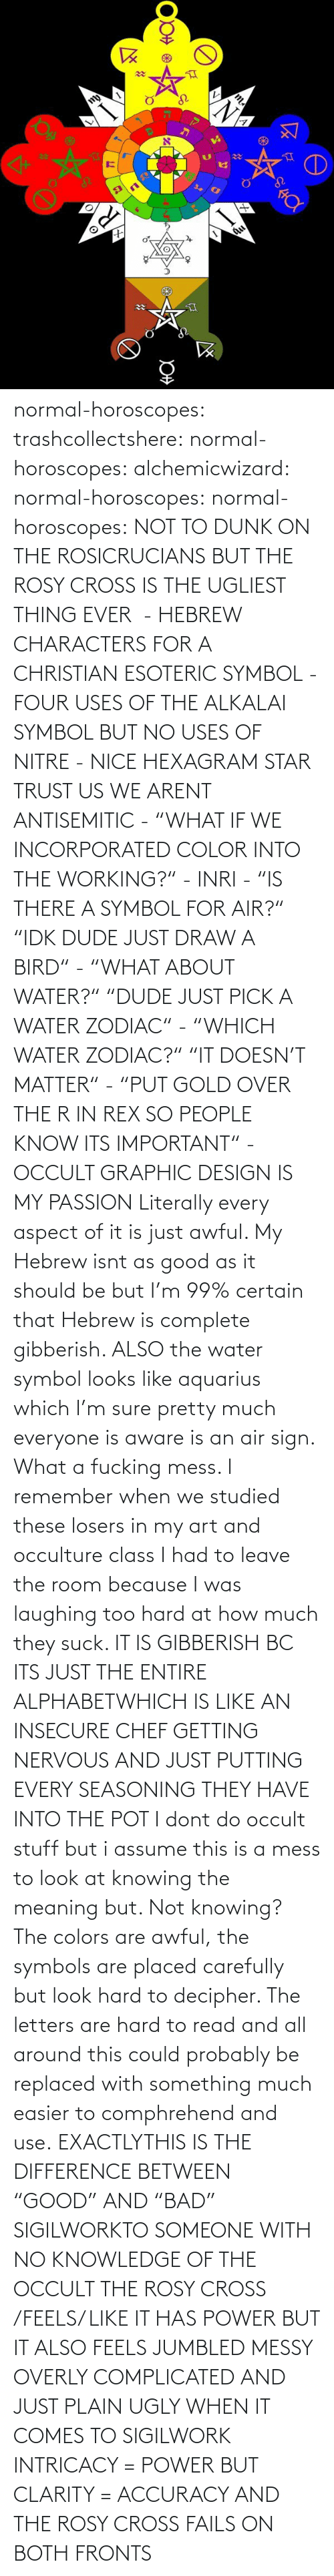 "Dunk: normal-horoscopes:  trashcollectshere: normal-horoscopes:   alchemicwizard:  normal-horoscopes:  normal-horoscopes: NOT TO DUNK ON THE ROSICRUCIANS BUT THE ROSY CROSS IS THE UGLIEST THING EVER  - HEBREW CHARACTERS FOR A CHRISTIAN ESOTERIC SYMBOL - FOUR USES OF THE ALKALAI SYMBOL BUT NO USES OF NITRE - NICE HEXAGRAM STAR TRUST US WE ARENT ANTISEMITIC - ""WHAT IF WE INCORPORATED COLOR INTO THE WORKING?"" - INRI - ""IS THERE A SYMBOL FOR AIR?"" ""IDK DUDE JUST DRAW A BIRD"" - ""WHAT ABOUT WATER?"" ""DUDE JUST PICK A WATER ZODIAC"" - ""WHICH WATER ZODIAC?"" ""IT DOESN'T MATTER"" - ""PUT GOLD OVER THE R IN REX SO PEOPLE KNOW ITS IMPORTANT"" - OCCULT GRAPHIC DESIGN IS MY PASSION  Literally every aspect of it is just awful. My Hebrew isnt as good as it should be but I'm 99% certain that Hebrew is complete gibberish.  ALSO the water symbol looks like aquarius which I'm sure pretty much everyone is aware is an air sign. What a fucking mess.  I remember when we studied these losers in my art and occulture class I had to leave the room because I was laughing too hard at how much they suck.   IT IS GIBBERISH BC ITS JUST THE ENTIRE ALPHABETWHICH IS LIKE AN INSECURE CHEF GETTING NERVOUS AND JUST PUTTING EVERY SEASONING THEY HAVE INTO THE POT     I dont do occult stuff but i assume this is a mess to look at knowing the meaning but. Not knowing? The colors are awful, the symbols are placed carefully but look hard to decipher. The letters are hard to read and all around this could probably be replaced with something much easier to comphrehend and use.  EXACTLYTHIS IS THE DIFFERENCE BETWEEN ""GOOD"" AND ""BAD"" SIGILWORKTO SOMEONE WITH NO KNOWLEDGE OF THE OCCULT THE ROSY CROSS /FEELS/ LIKE IT HAS POWER BUT IT ALSO FEELS JUMBLED MESSY OVERLY COMPLICATED AND JUST PLAIN UGLY WHEN IT COMES TO SIGILWORK INTRICACY = POWER BUT CLARITY = ACCURACY AND THE ROSY CROSS FAILS ON BOTH FRONTS"